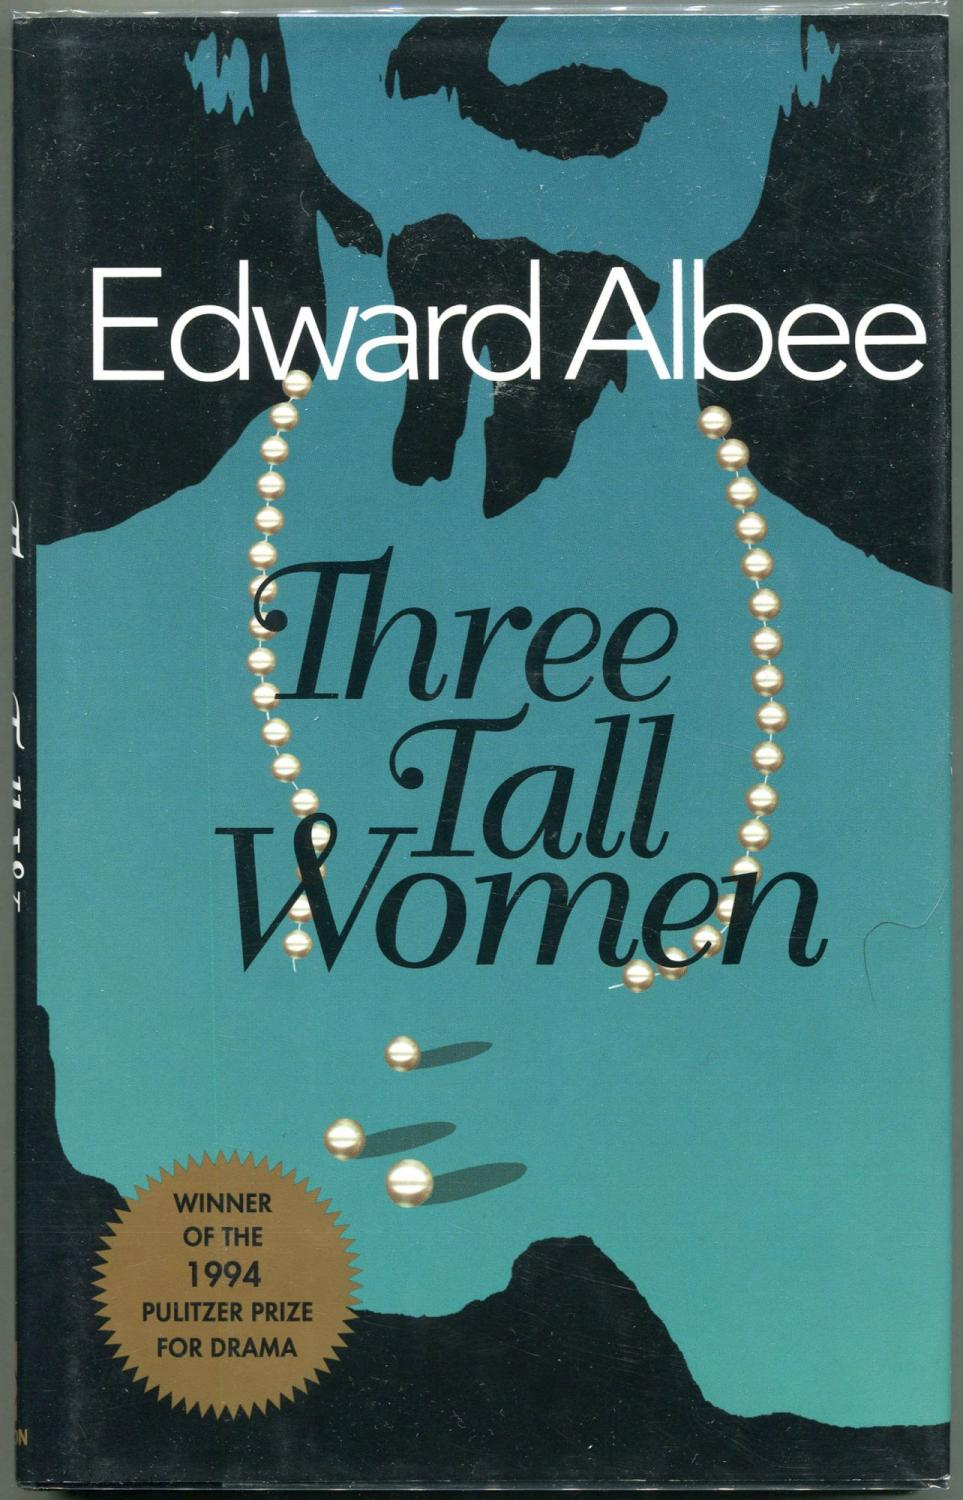 an examination of three tall women by edward albee All three women then return to the stage playing a at three different points in her life, outfitted by costumer ann roth in stylish dresses in various like albee himself, the son left home at a young age due to his mother's refusal to accept his homosexuality, and that fissure was never fully mended.